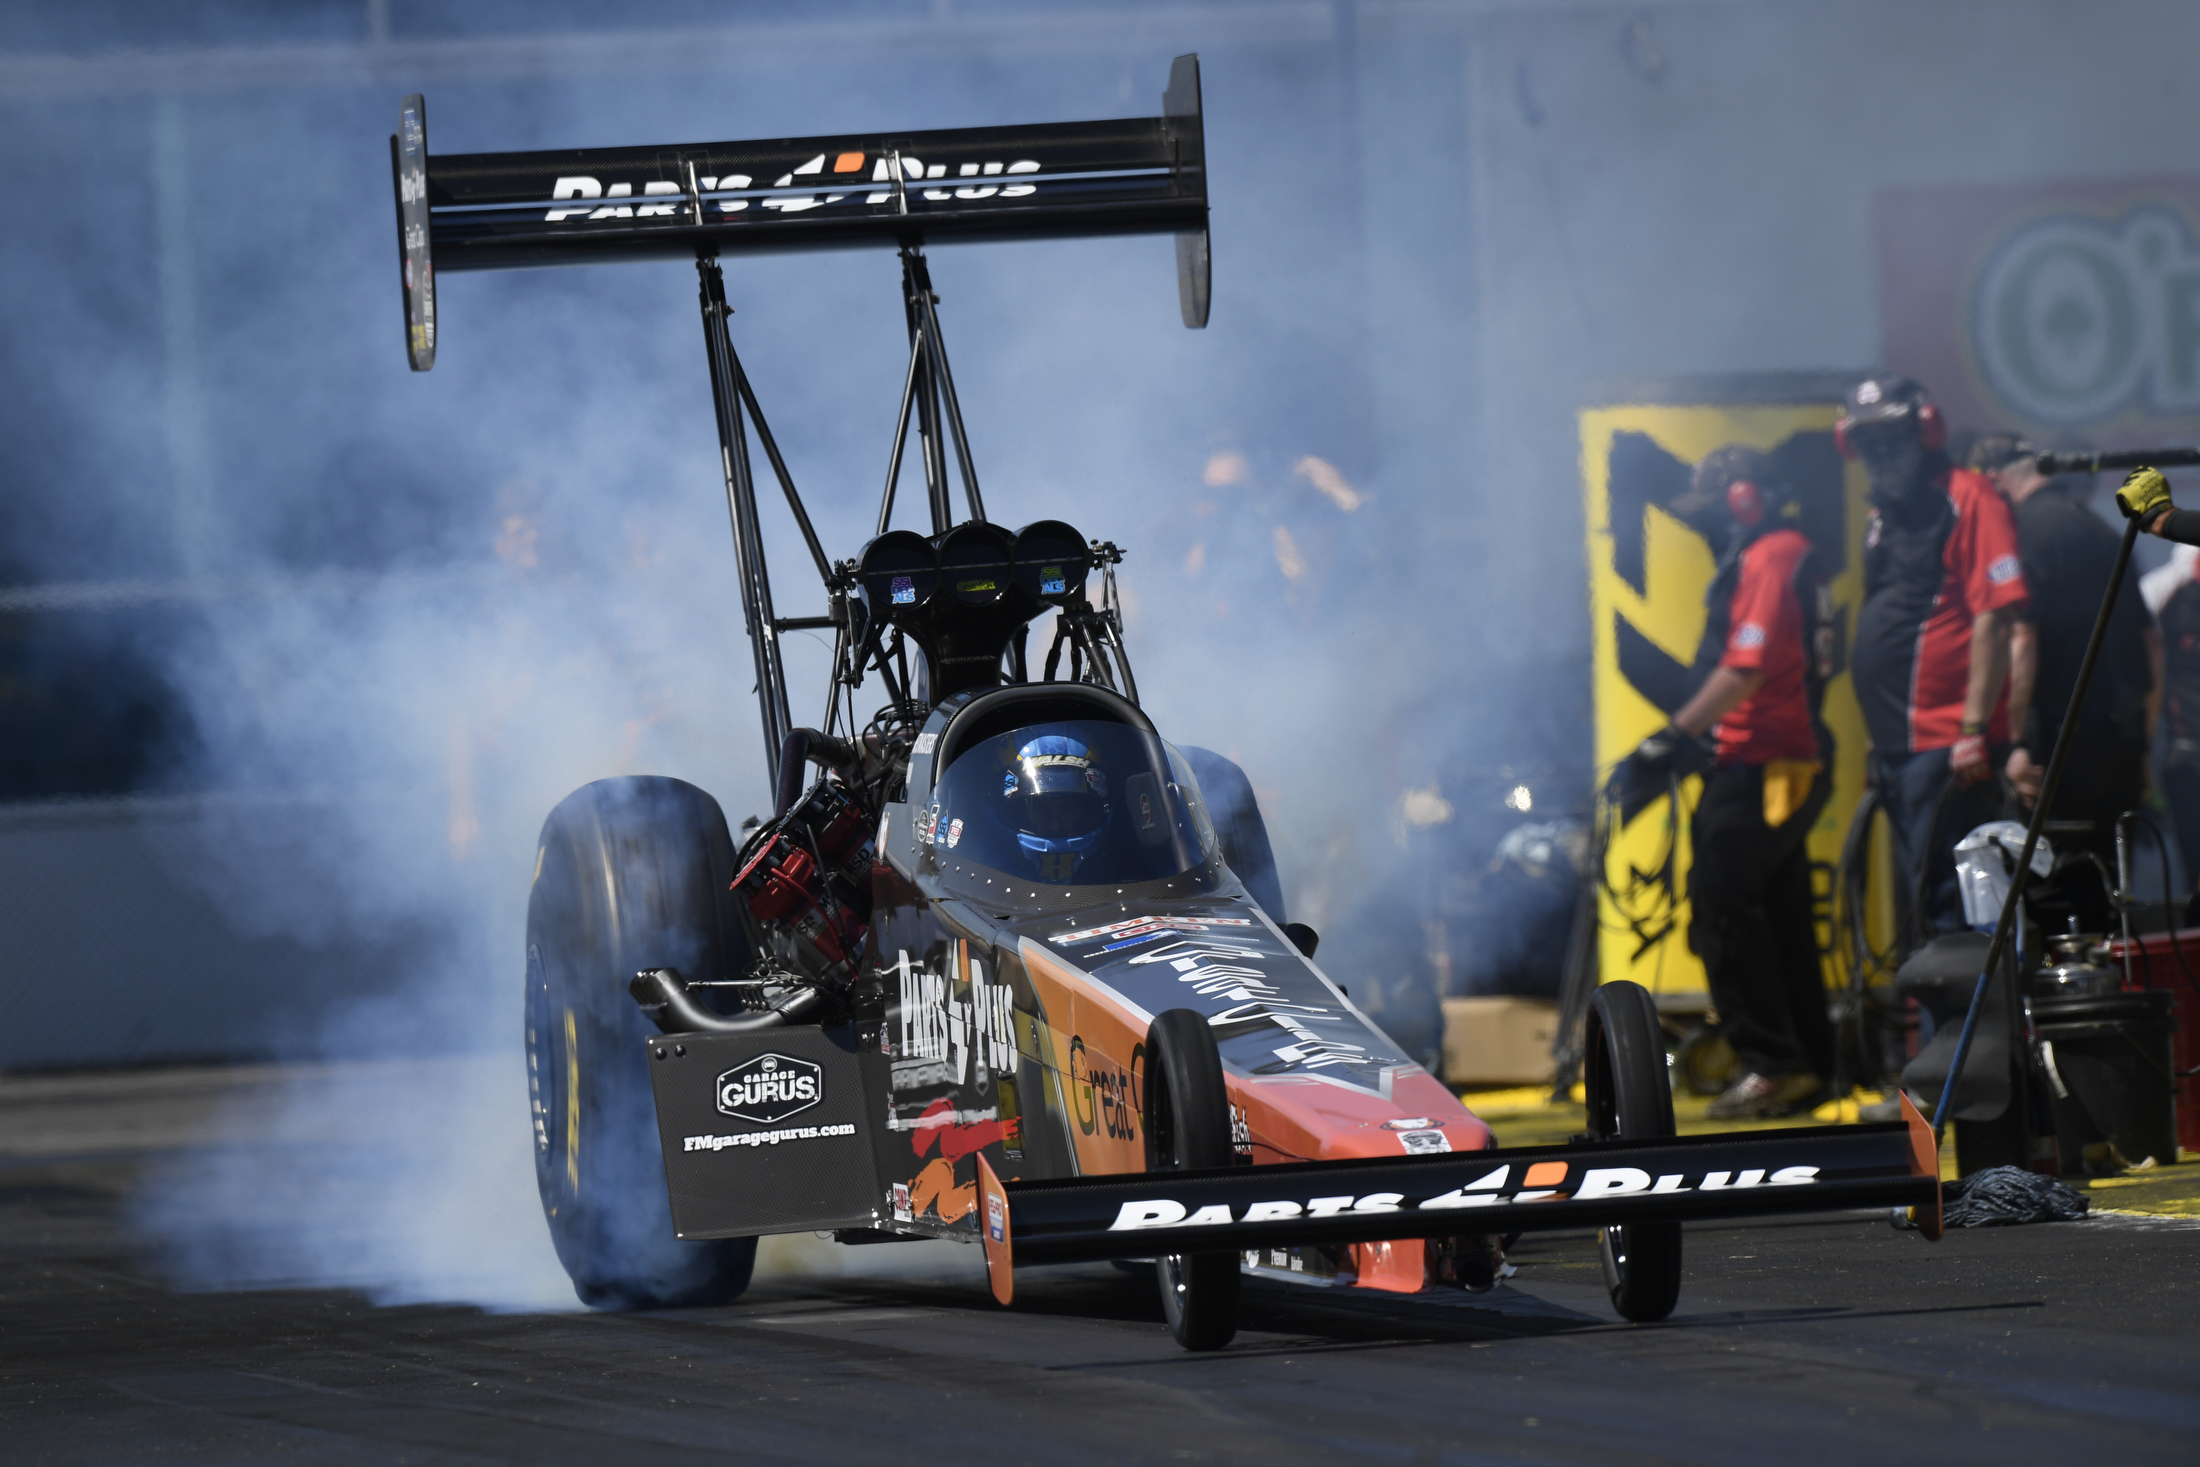 NHRA Top Fuel - Clay Millican - Saturday - Gainesville - Gatornationals